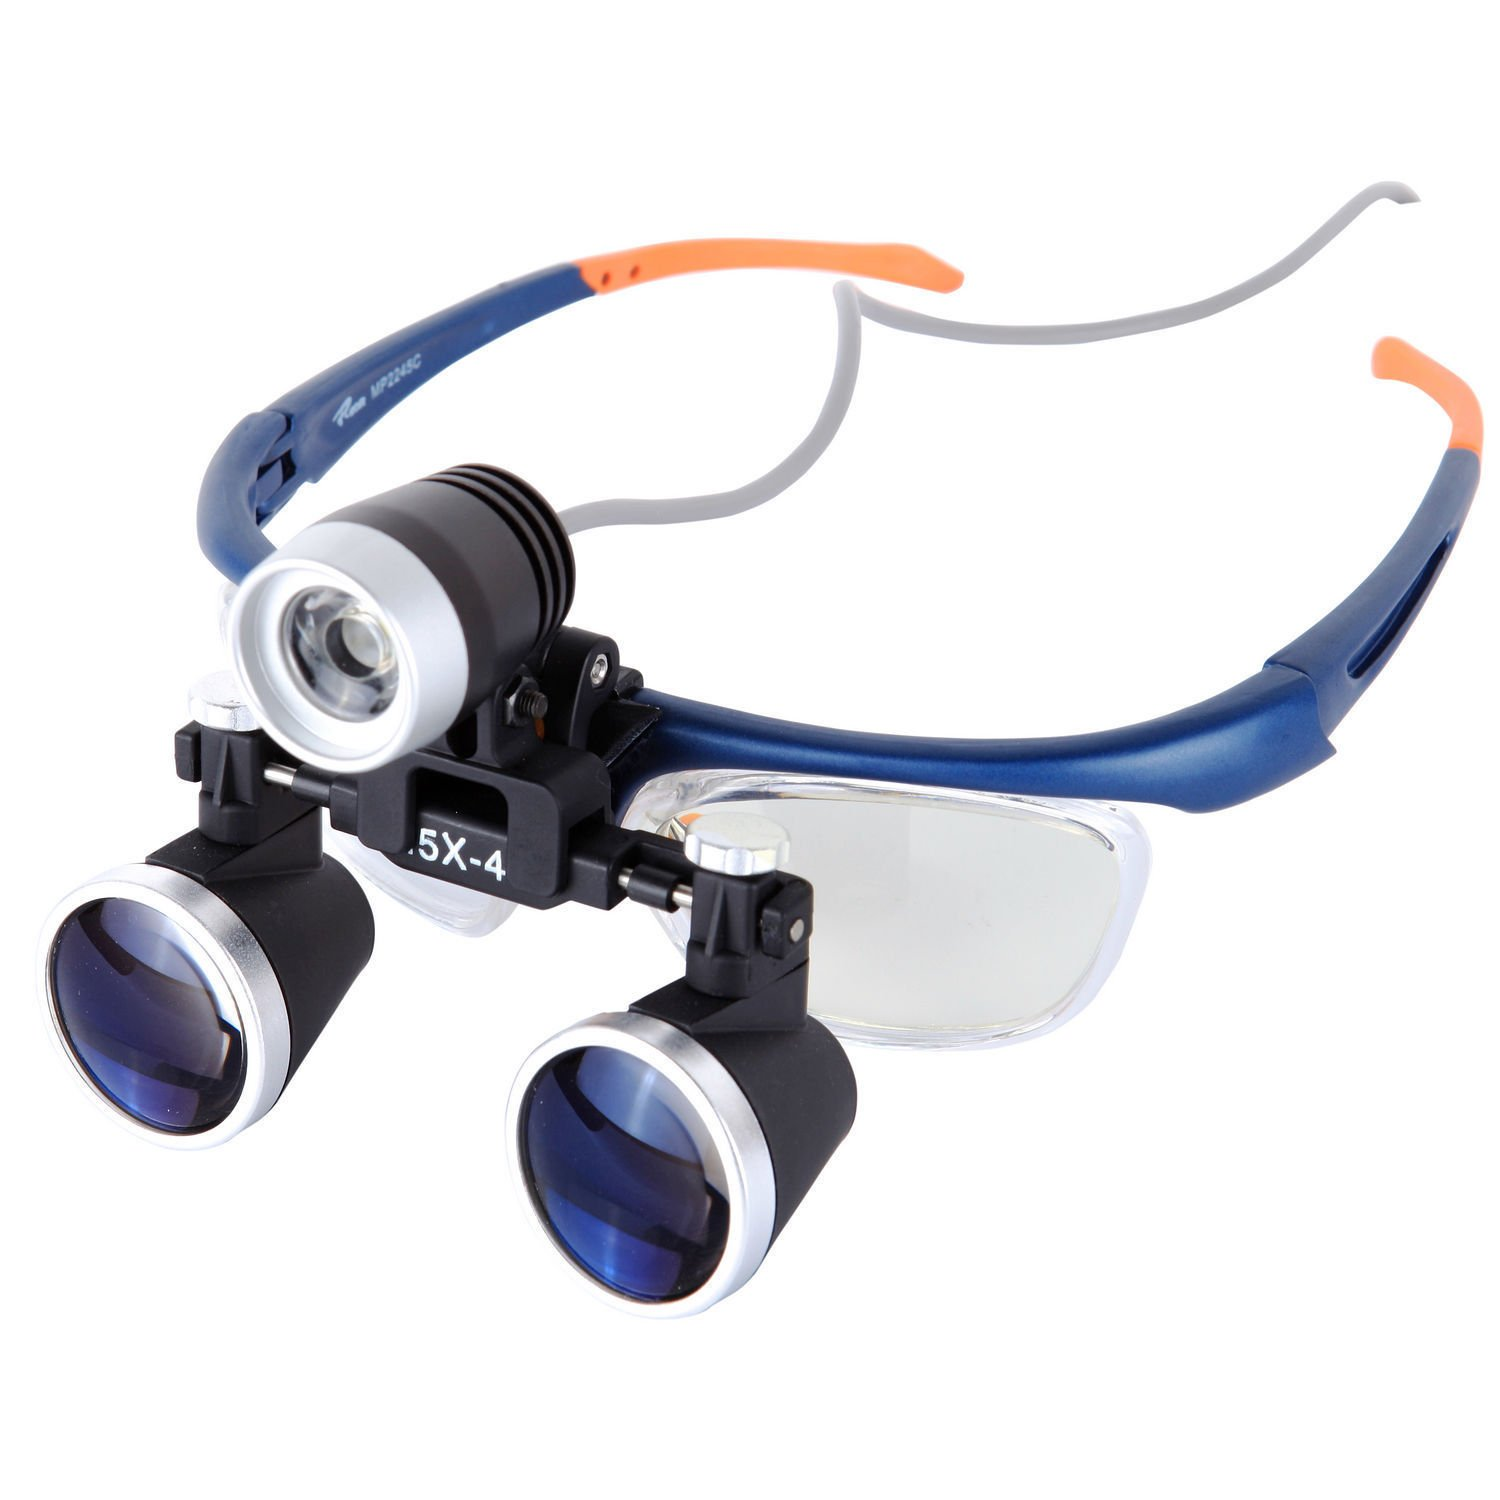 ELEOPTION Headset Magnifying Glasses 2.5X with LED Headlight Lamp 3W High Brightness Magnifier Loupe for Dental Surgical Binocular Loupes Glasses (Headlight +Magnifier 2.5X)